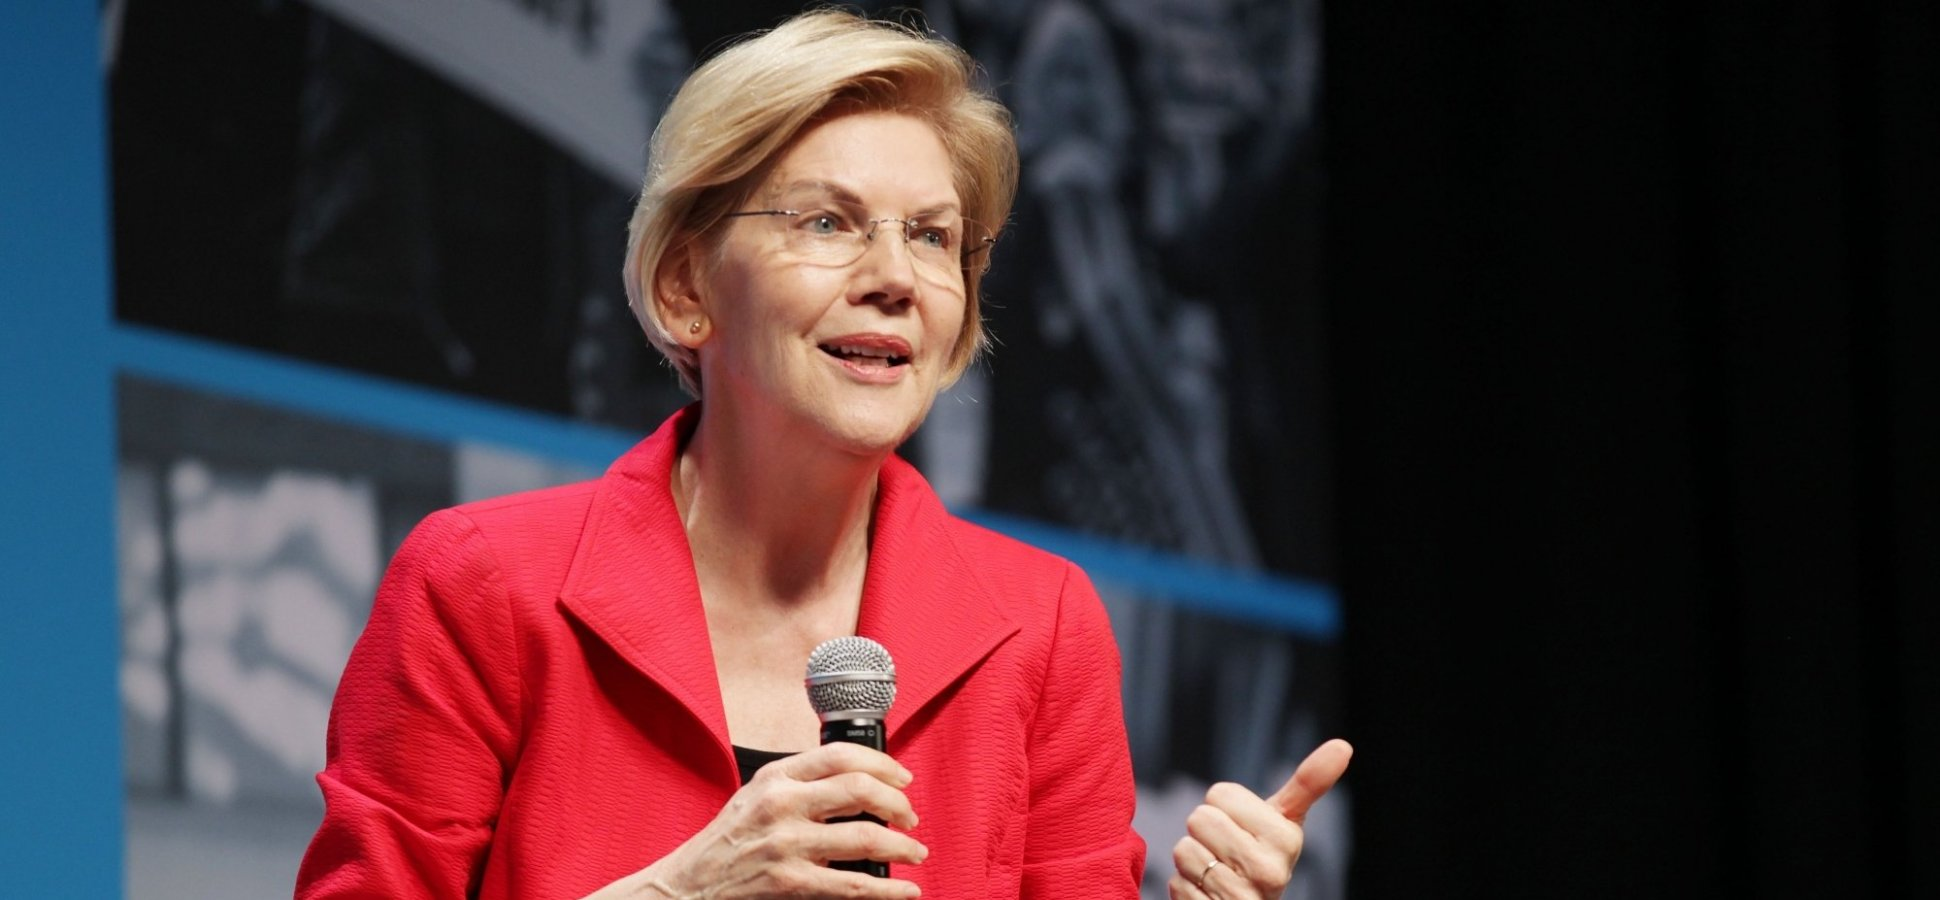 Big Tech, Tax Rollbacks, and the Minimum Wage: Where the Democratic Candidates Stand on 6 Big Business Issues